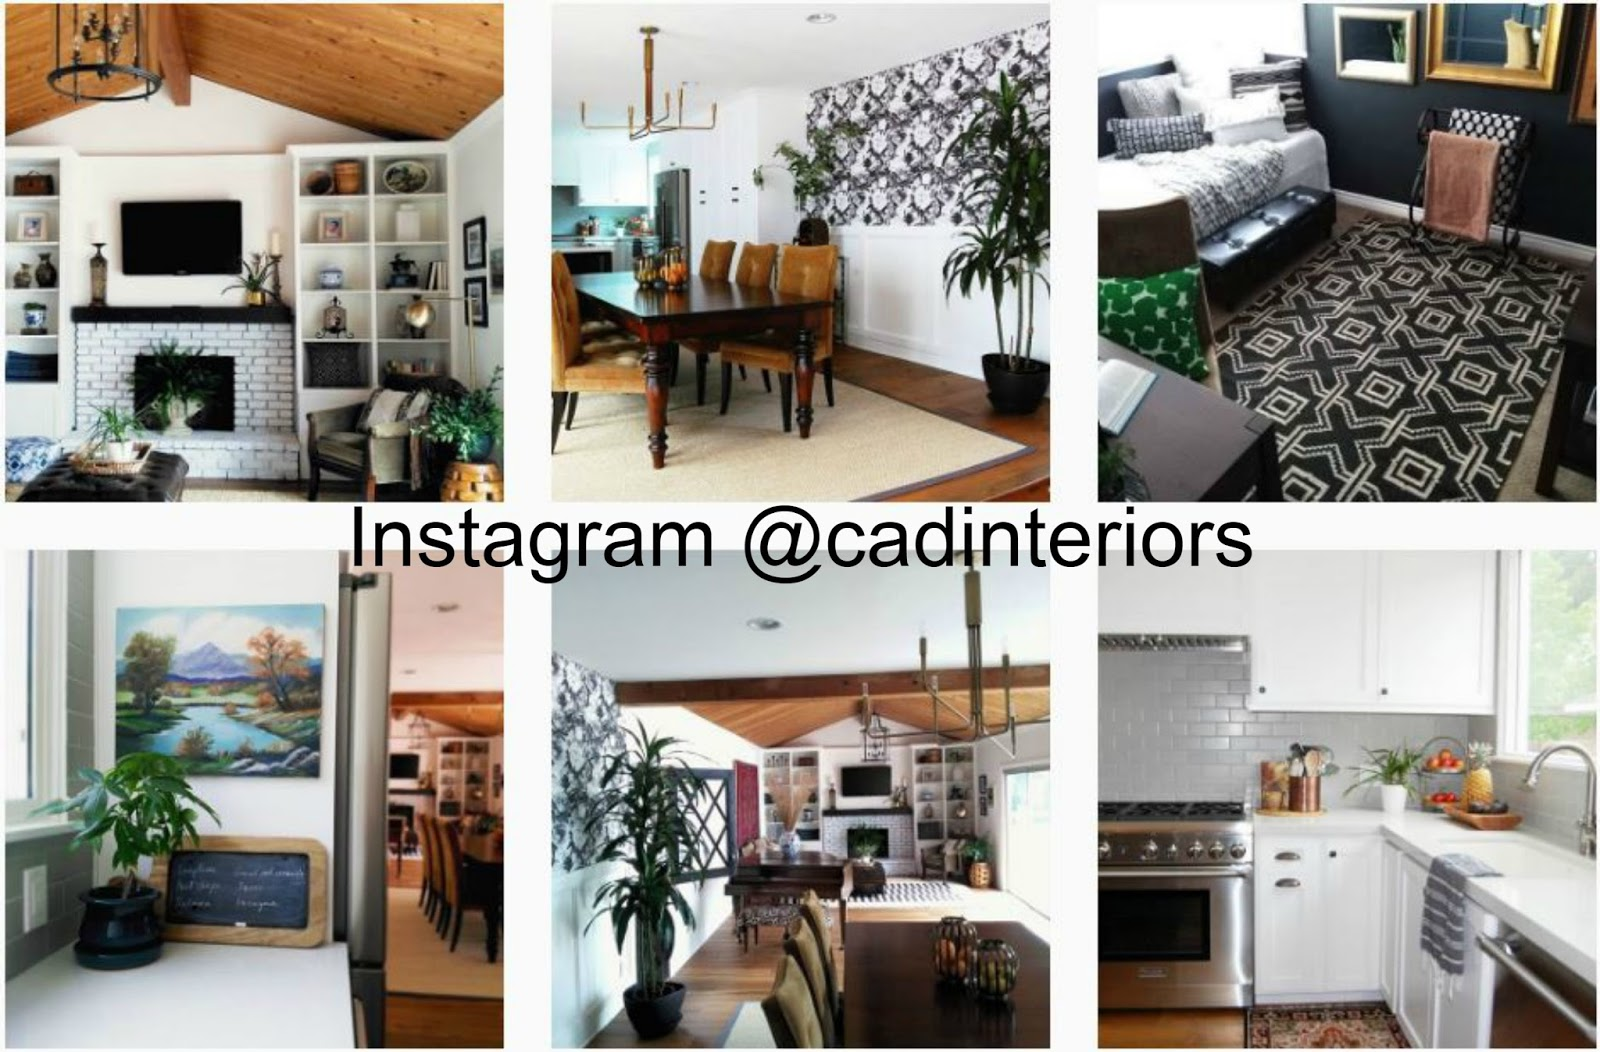 Follow CAD INTERIORS on Instagram